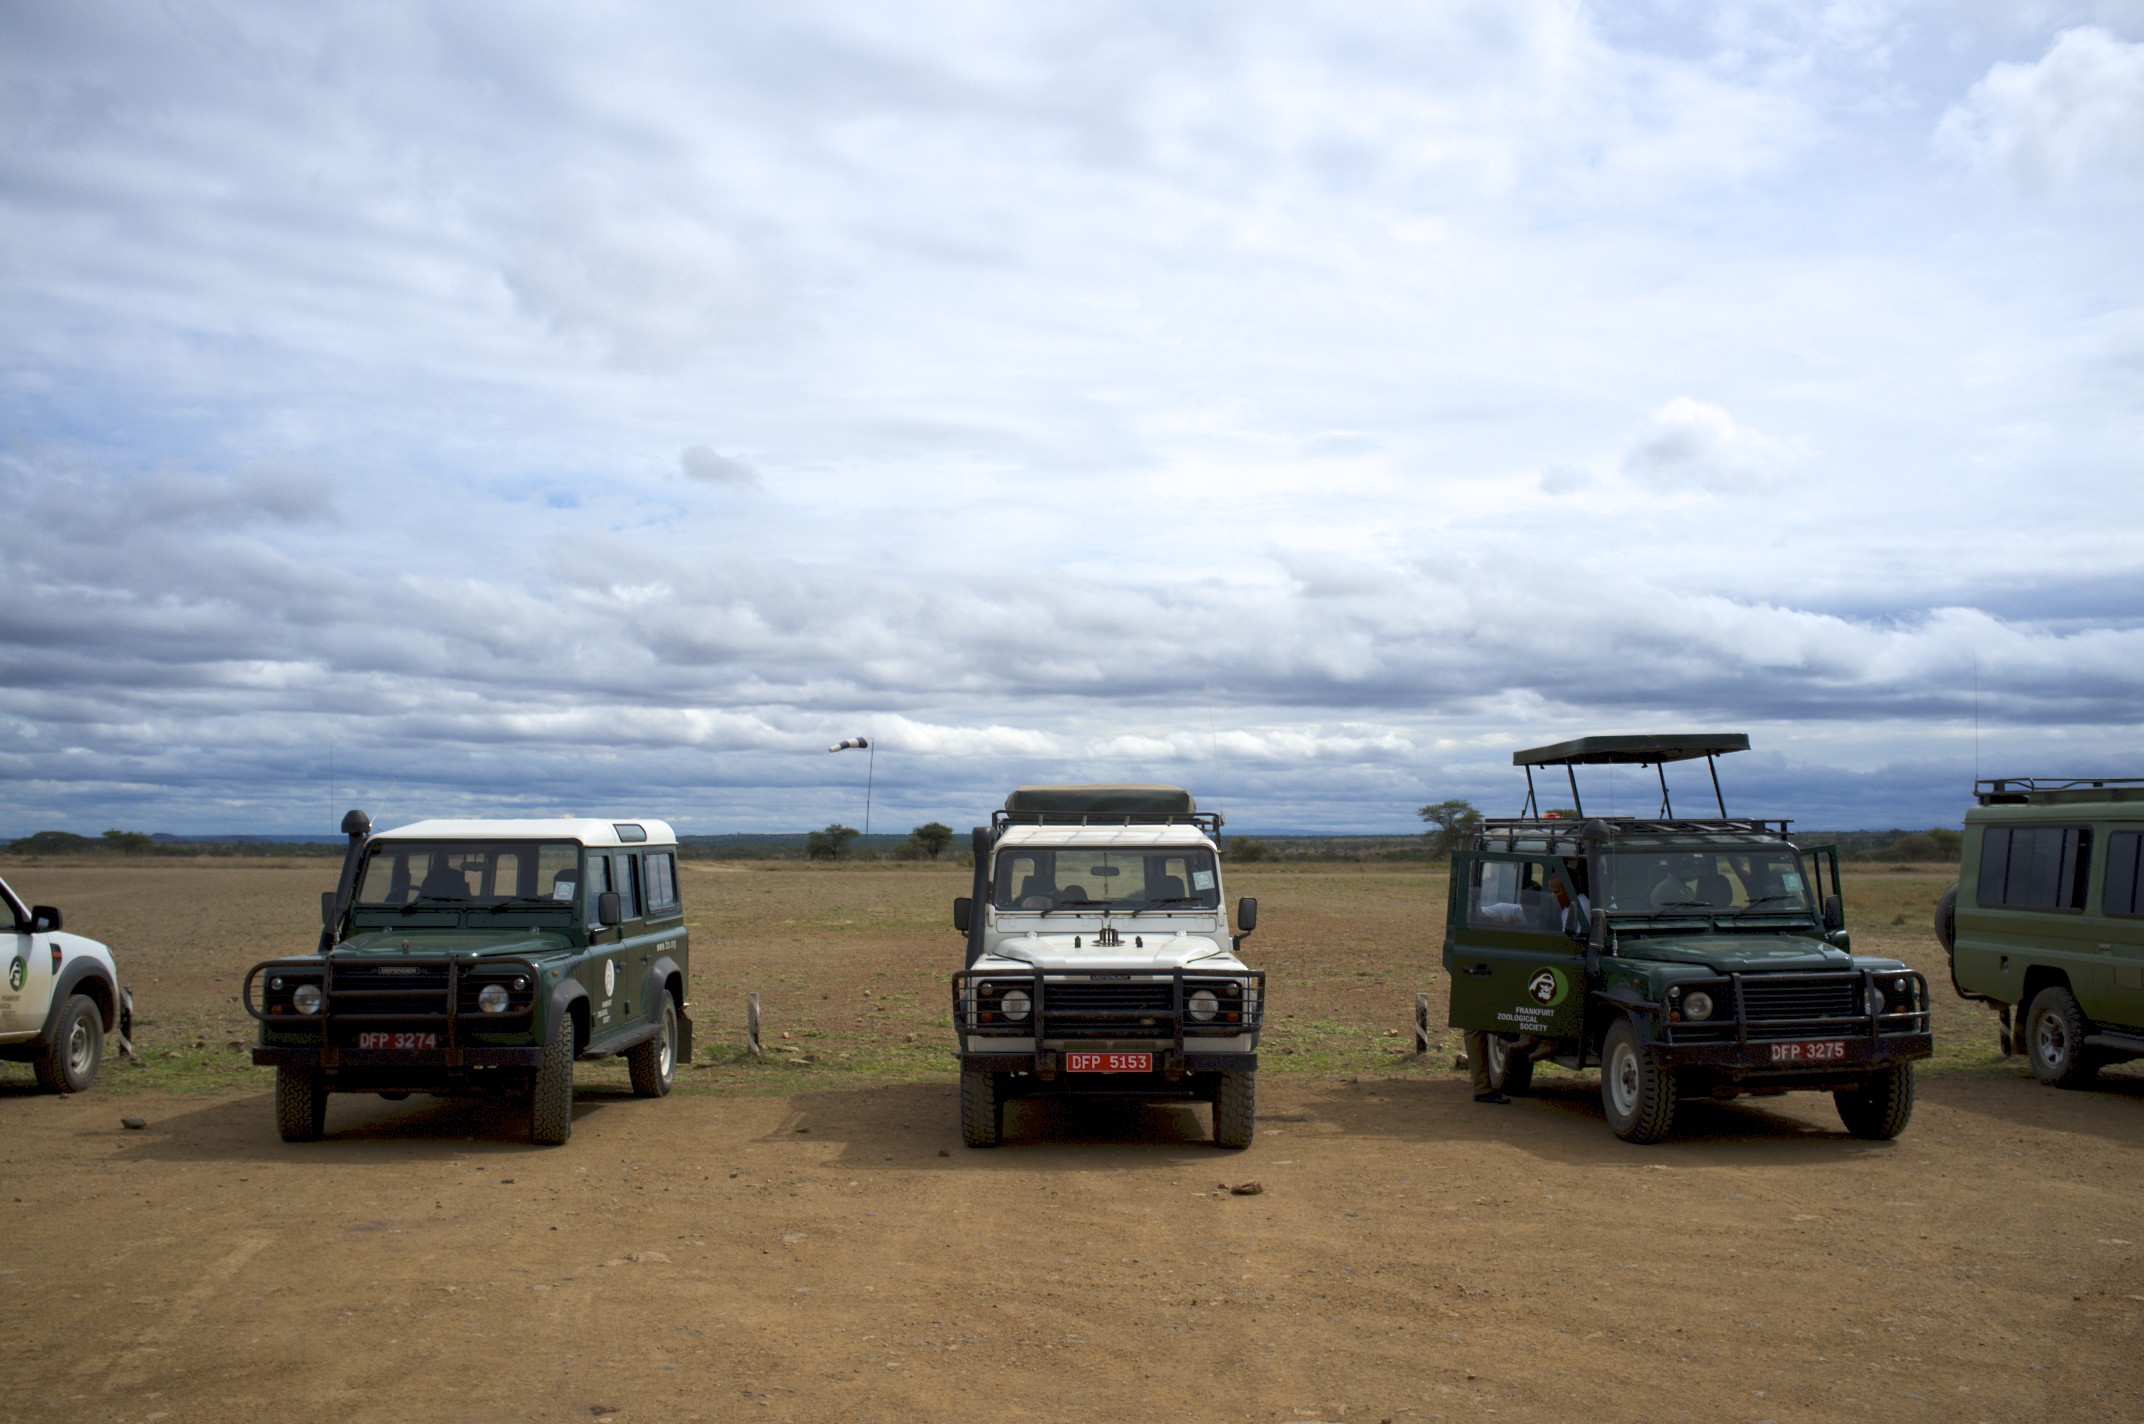 Serengeti Airstrip. Main parking lot and runway (2011).